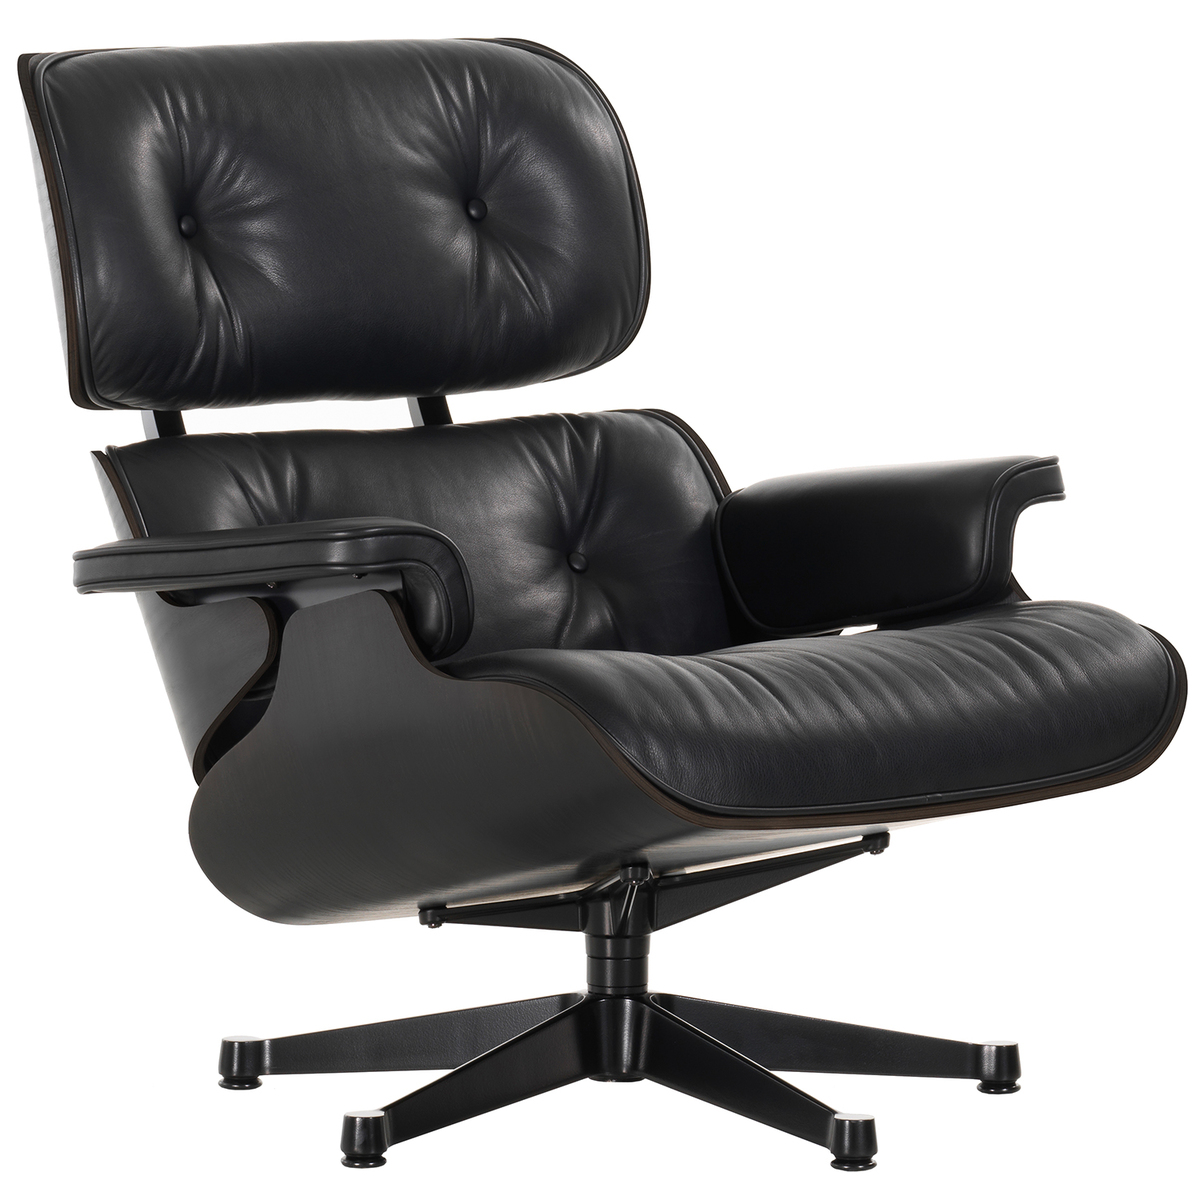 Marvelous Vitra Eames Lounge Chair Classic Size Black Ash Black Bralicious Painted Fabric Chair Ideas Braliciousco